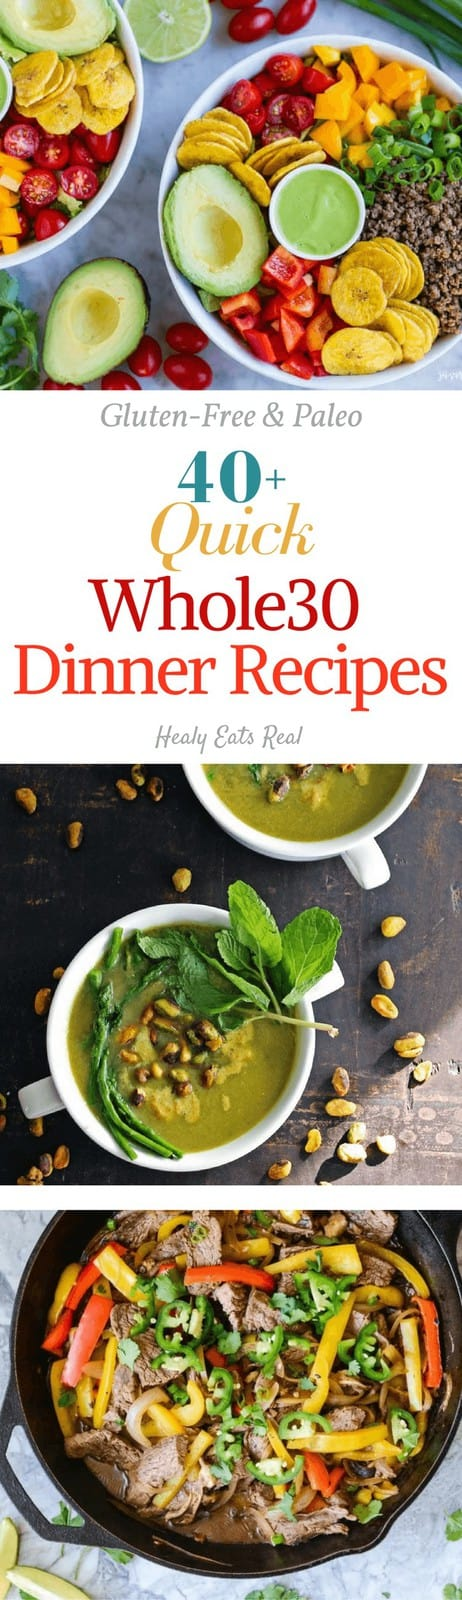 40 + Quick Whole 30 Dinner Recipes - A complete list of 40+ whole 30 dinner recipe that are amazingly healthy, paleo, gluten free and delicious recipes to make your life easier! #paleo #whole30 #easydinner #healthymeals #healyeatsreal